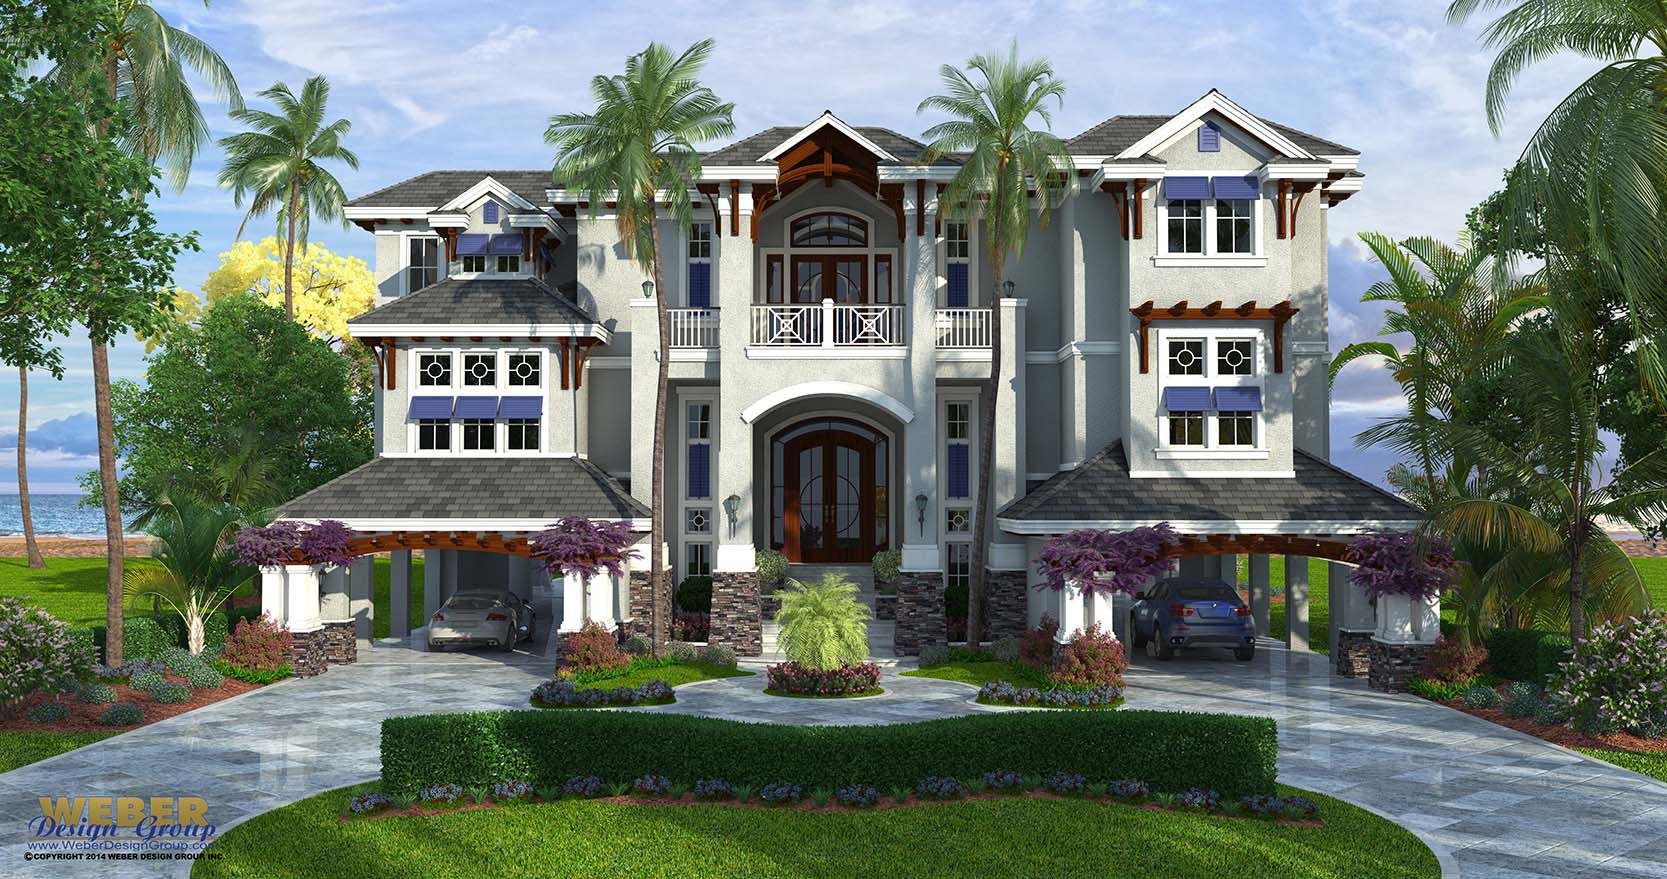 Coastal style house plan 3 story floor plan outdoor for 3 story home plans and designs